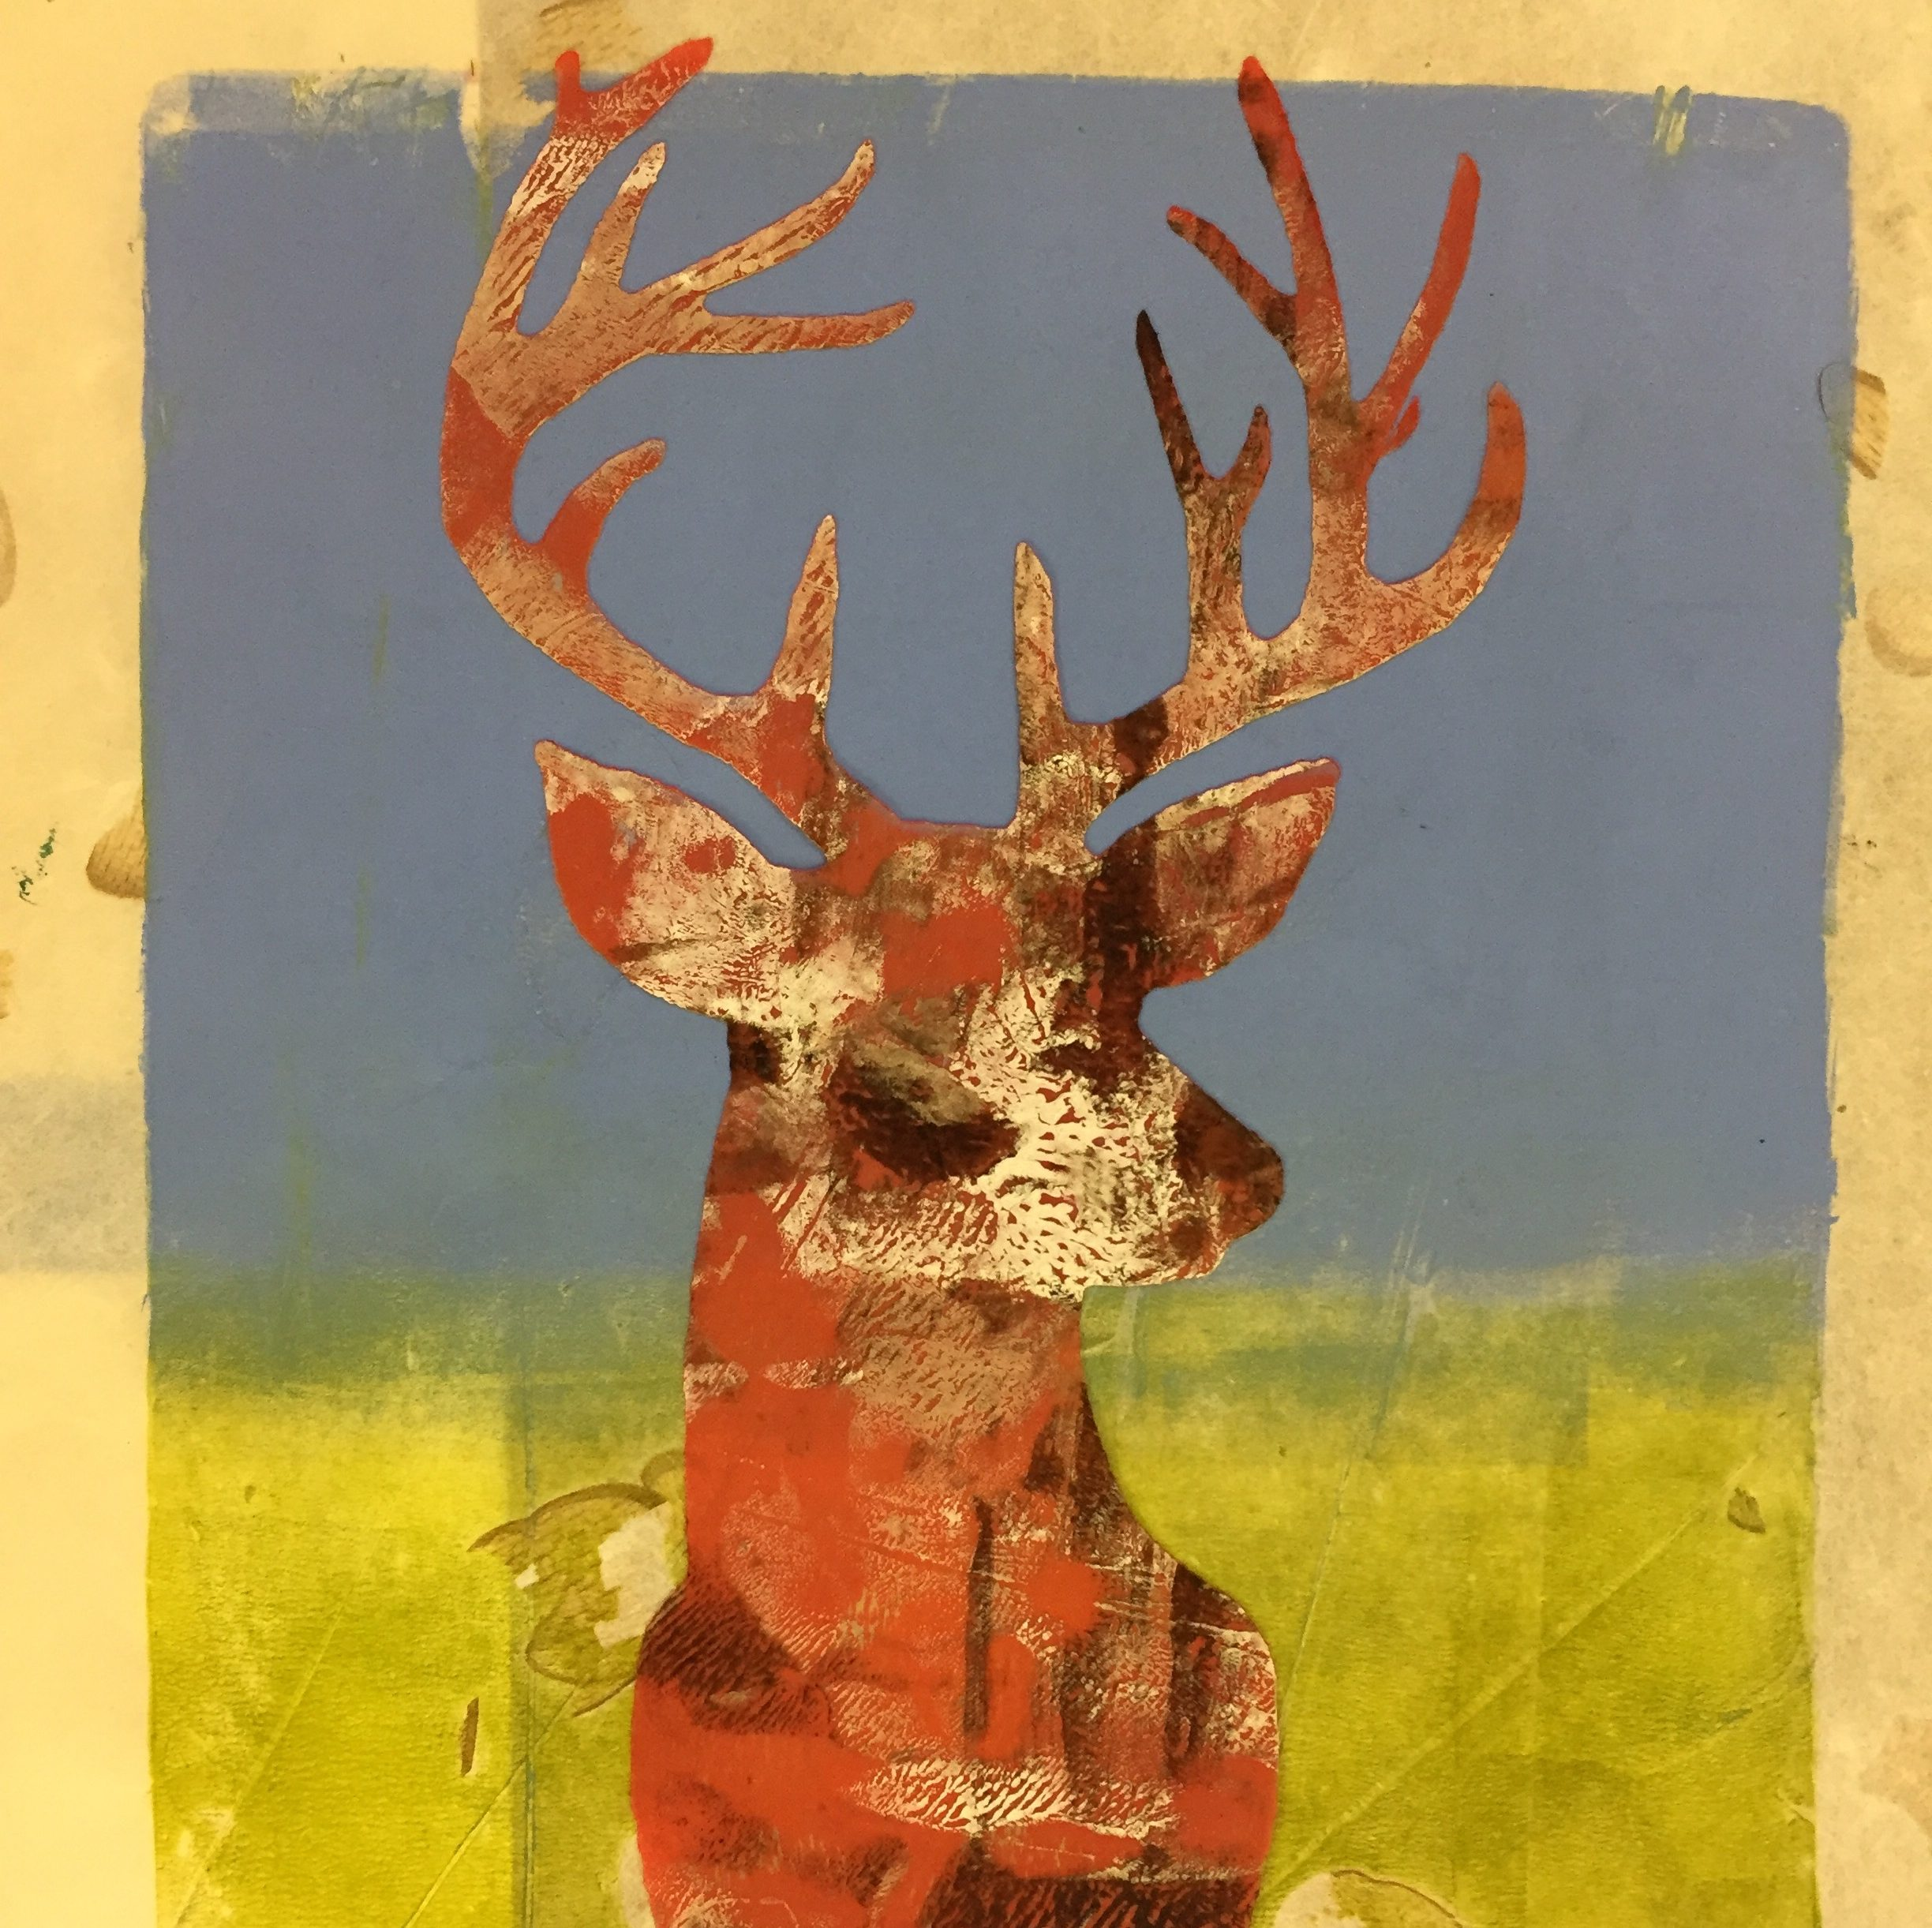 Monoprinting with OPEN paints and GELLI plates